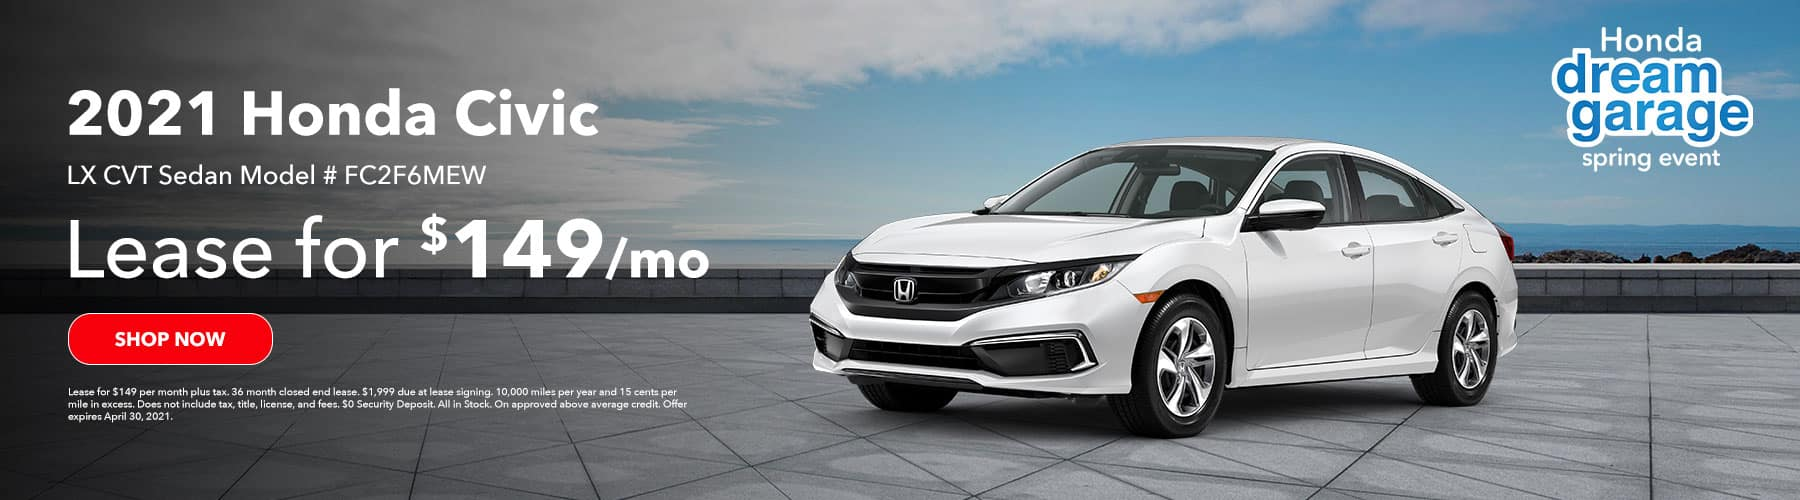 2021 Honda Civic LX CVT, Lease for $149 per month